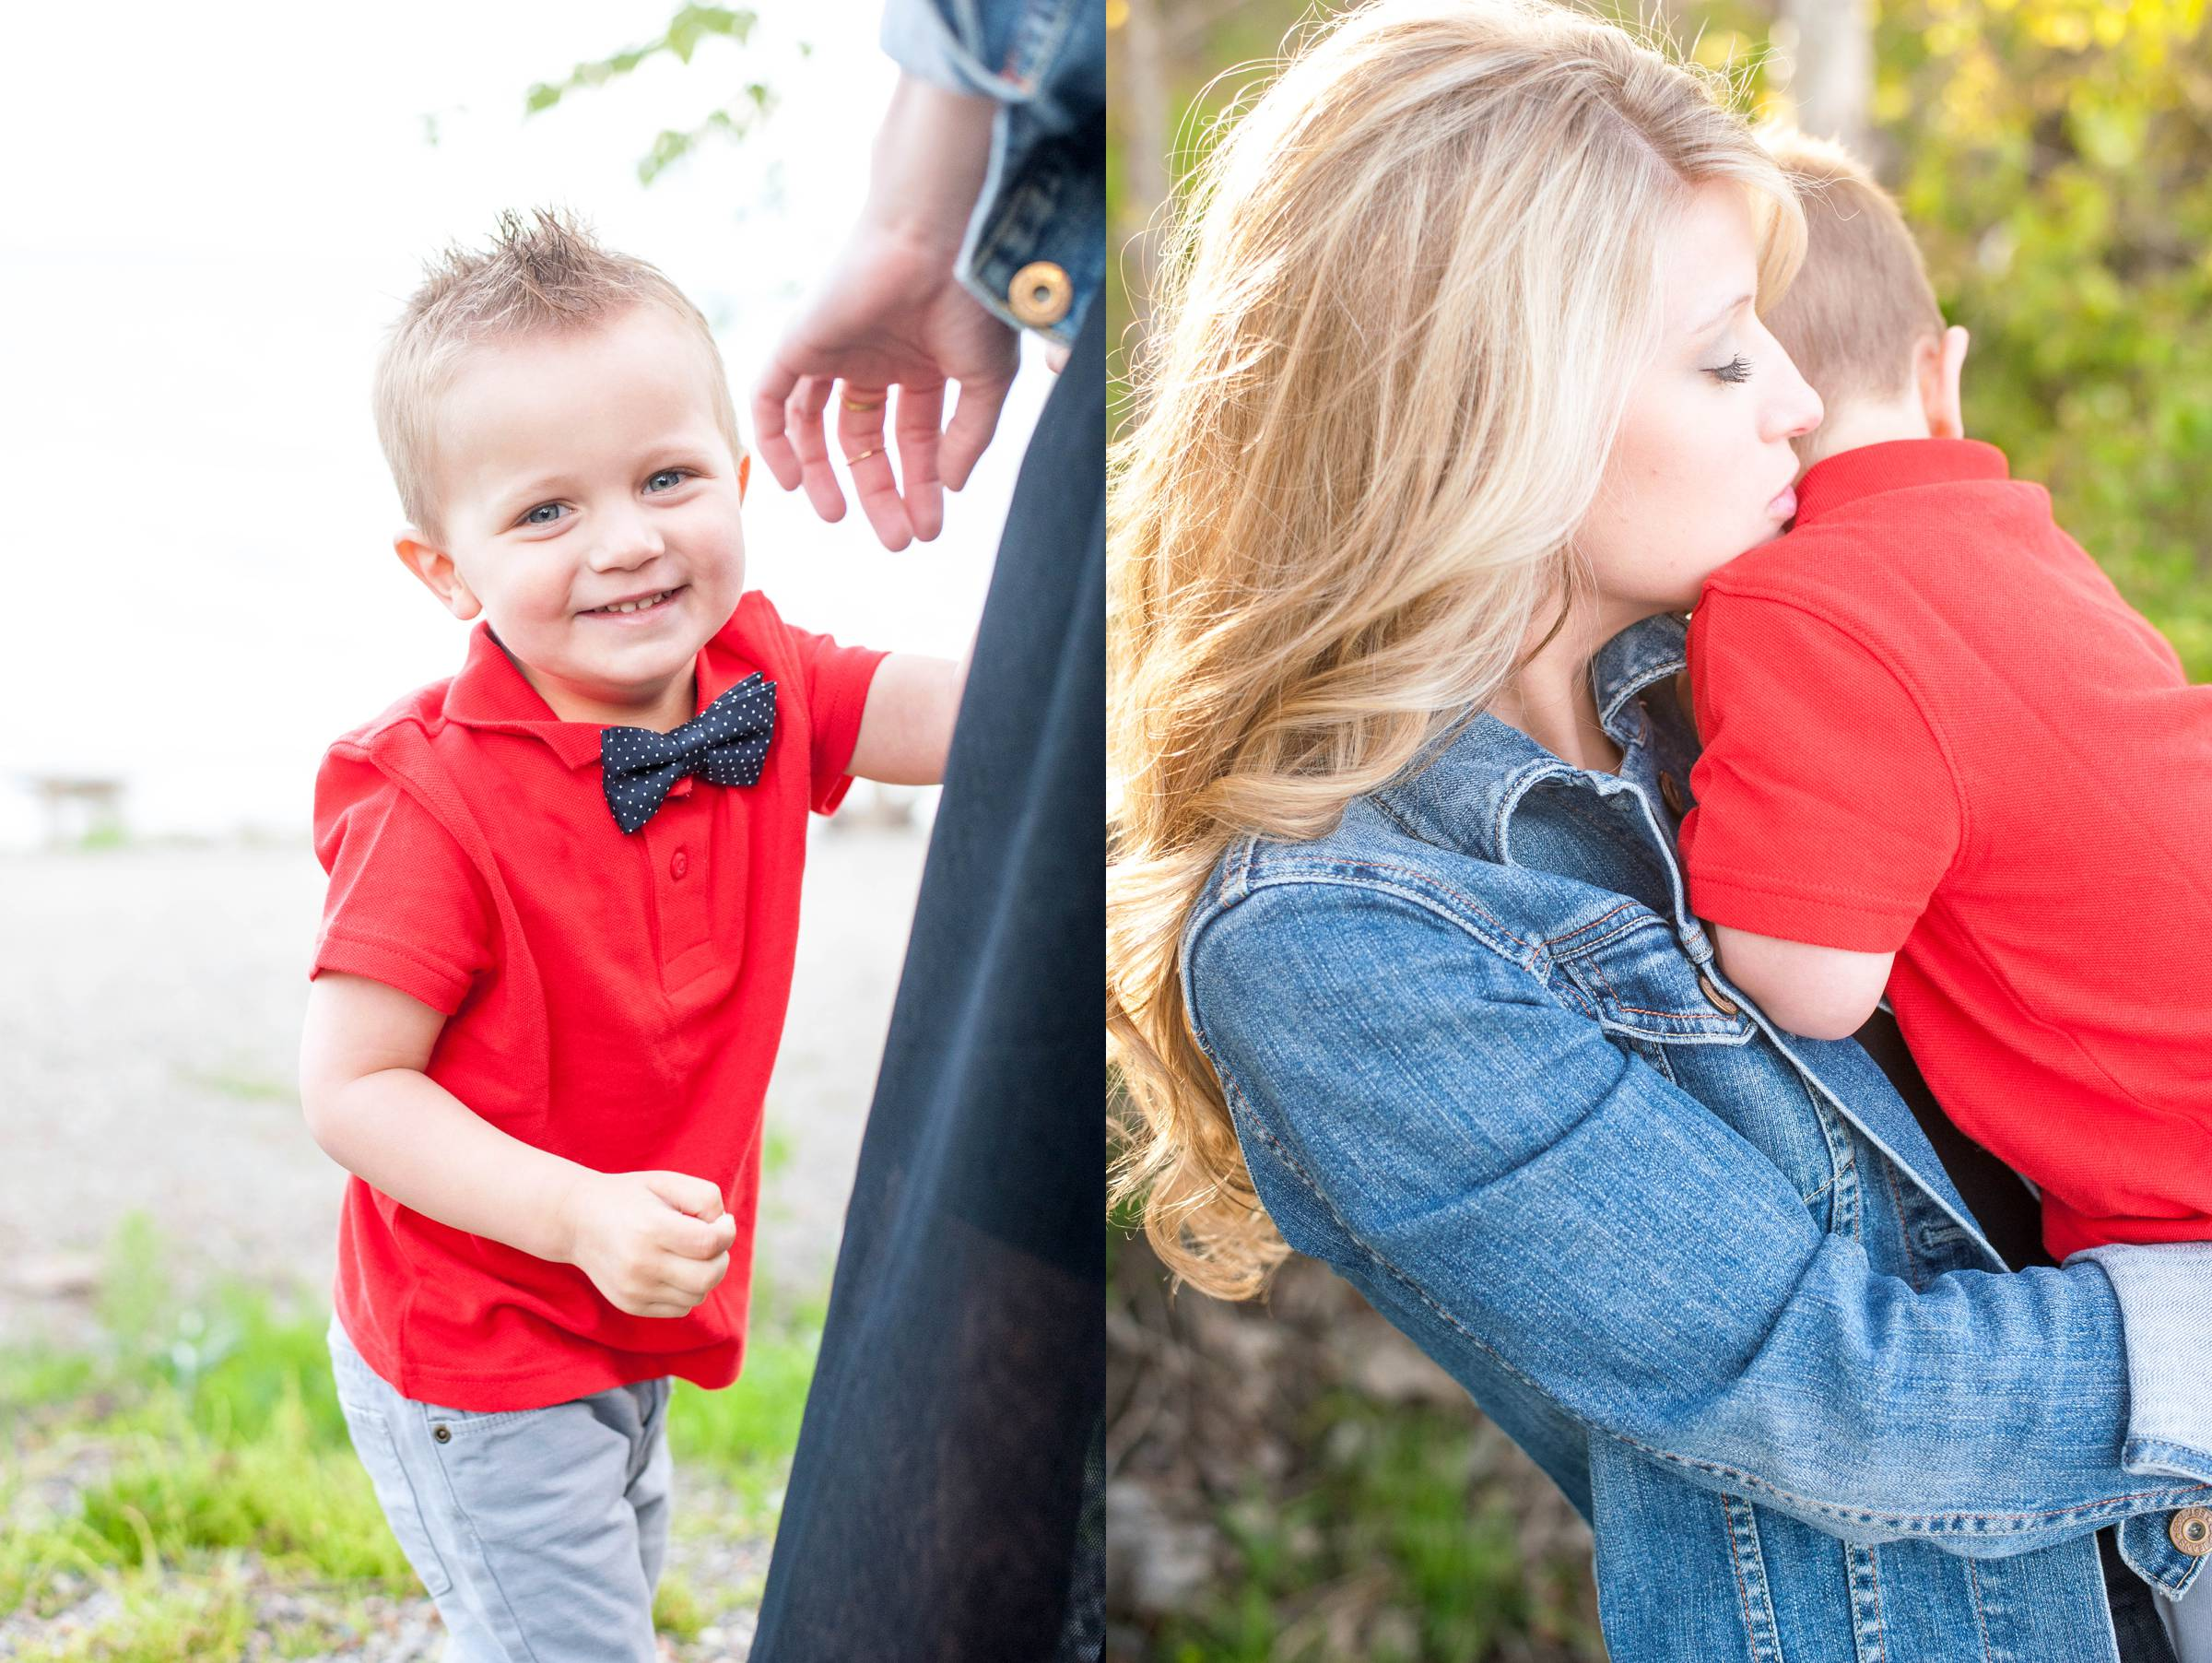 Janel-Gion-Photography-and-Design-Mommy-and-Me-Summer-Photo-Session-Sandpoint-Idaho_0004.jpg